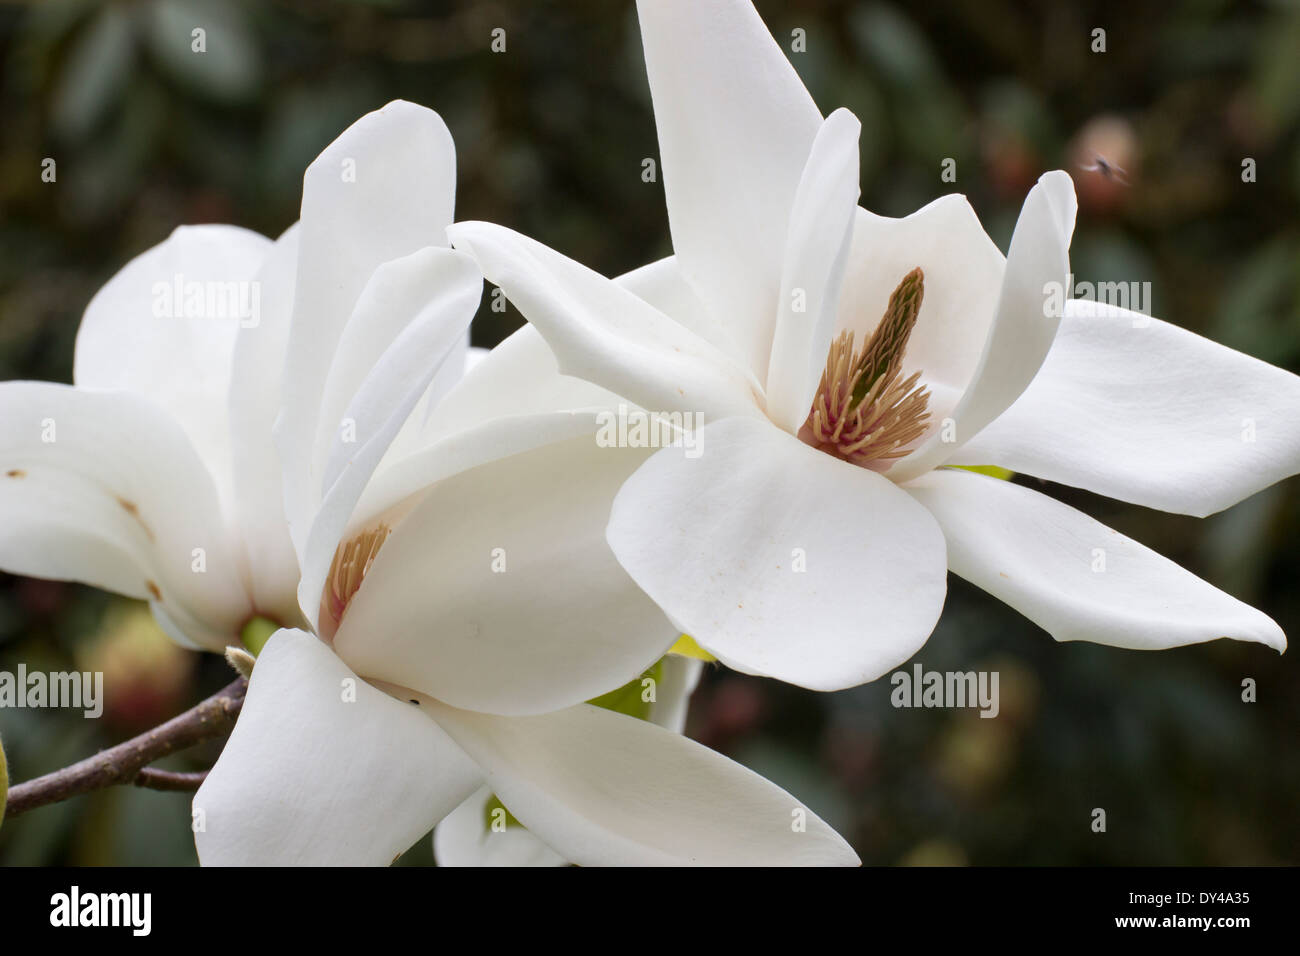 Large white flowers of magnolia david clulow in a cornish garden large white flowers of magnolia david clulow in a cornish garden mightylinksfo